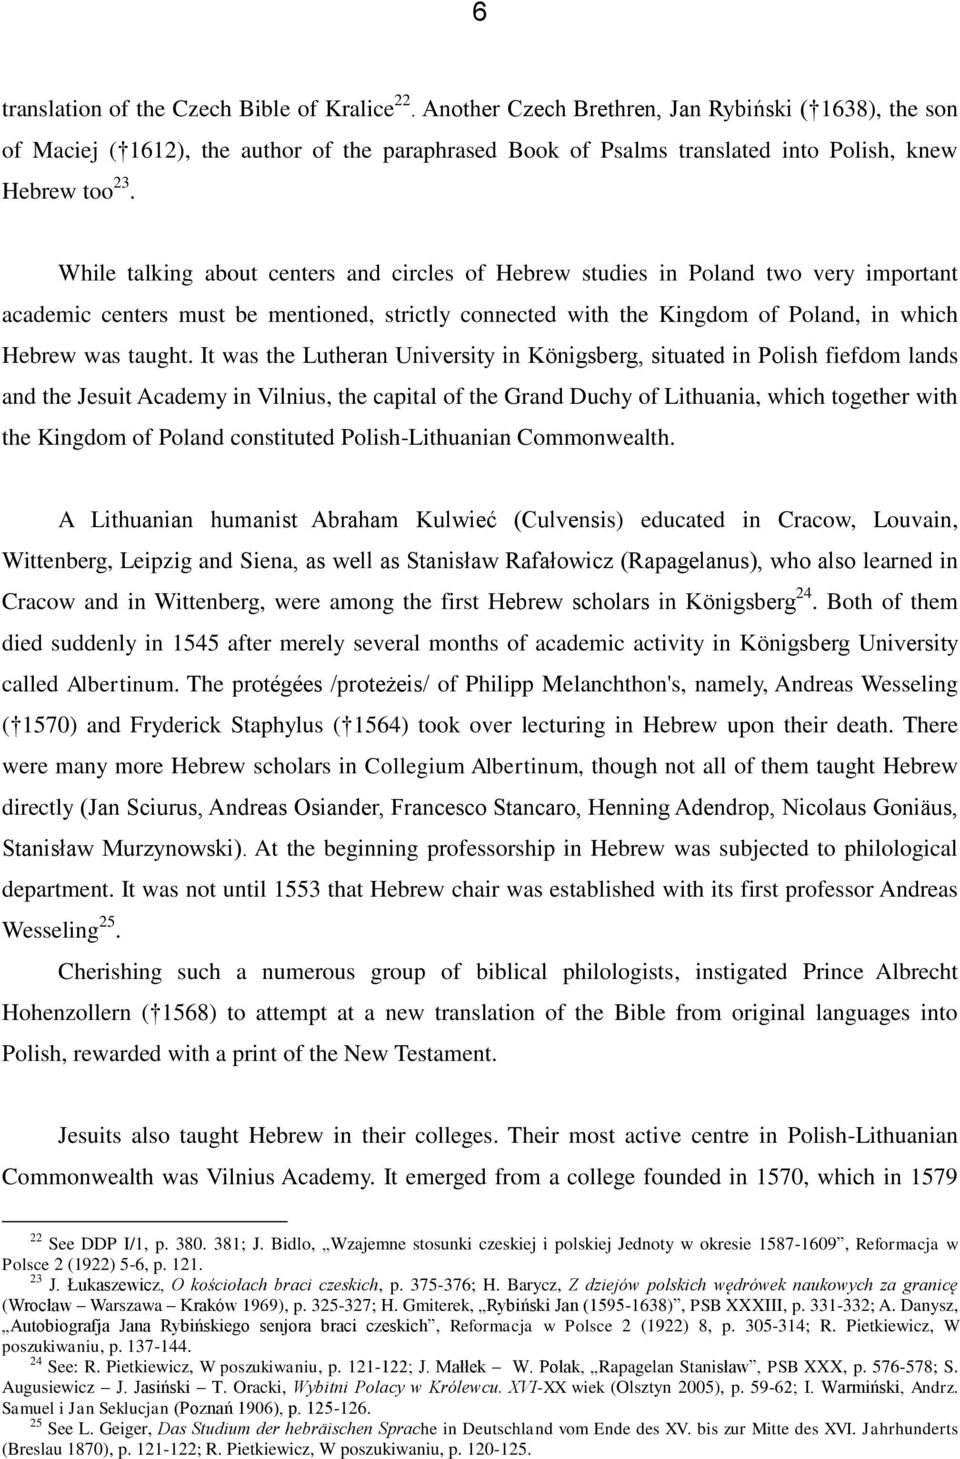 While talking about centers and circles of Hebrew studies in Poland two very important academic centers must be mentioned, strictly connected with the Kingdom of Poland, in which Hebrew was taught.